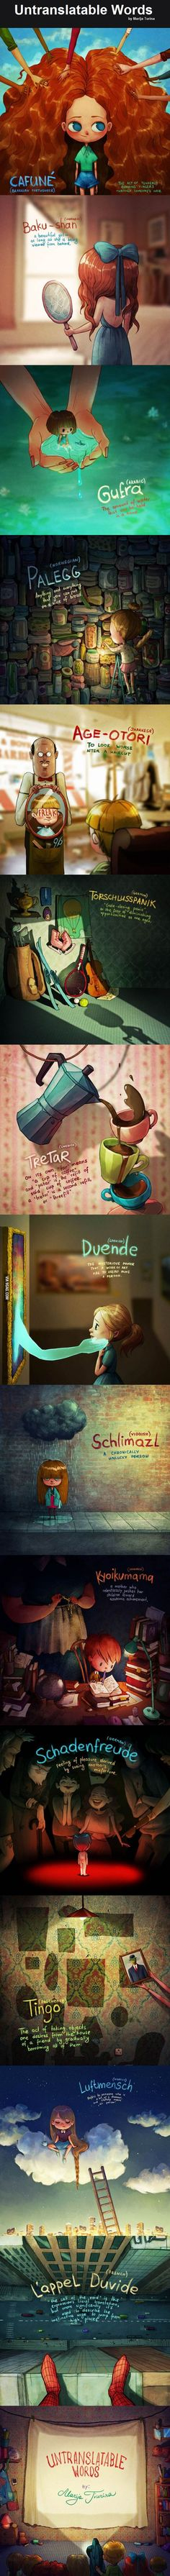 I´m having a ´duende´ over here. 14 Untranslatable Words Explained With Cute Illustrations Unusual Words, Rare Words, New Words, Writing Words, Writing Prompts, Writing Tips, Pretty Words, Beautiful Words, Cool Words